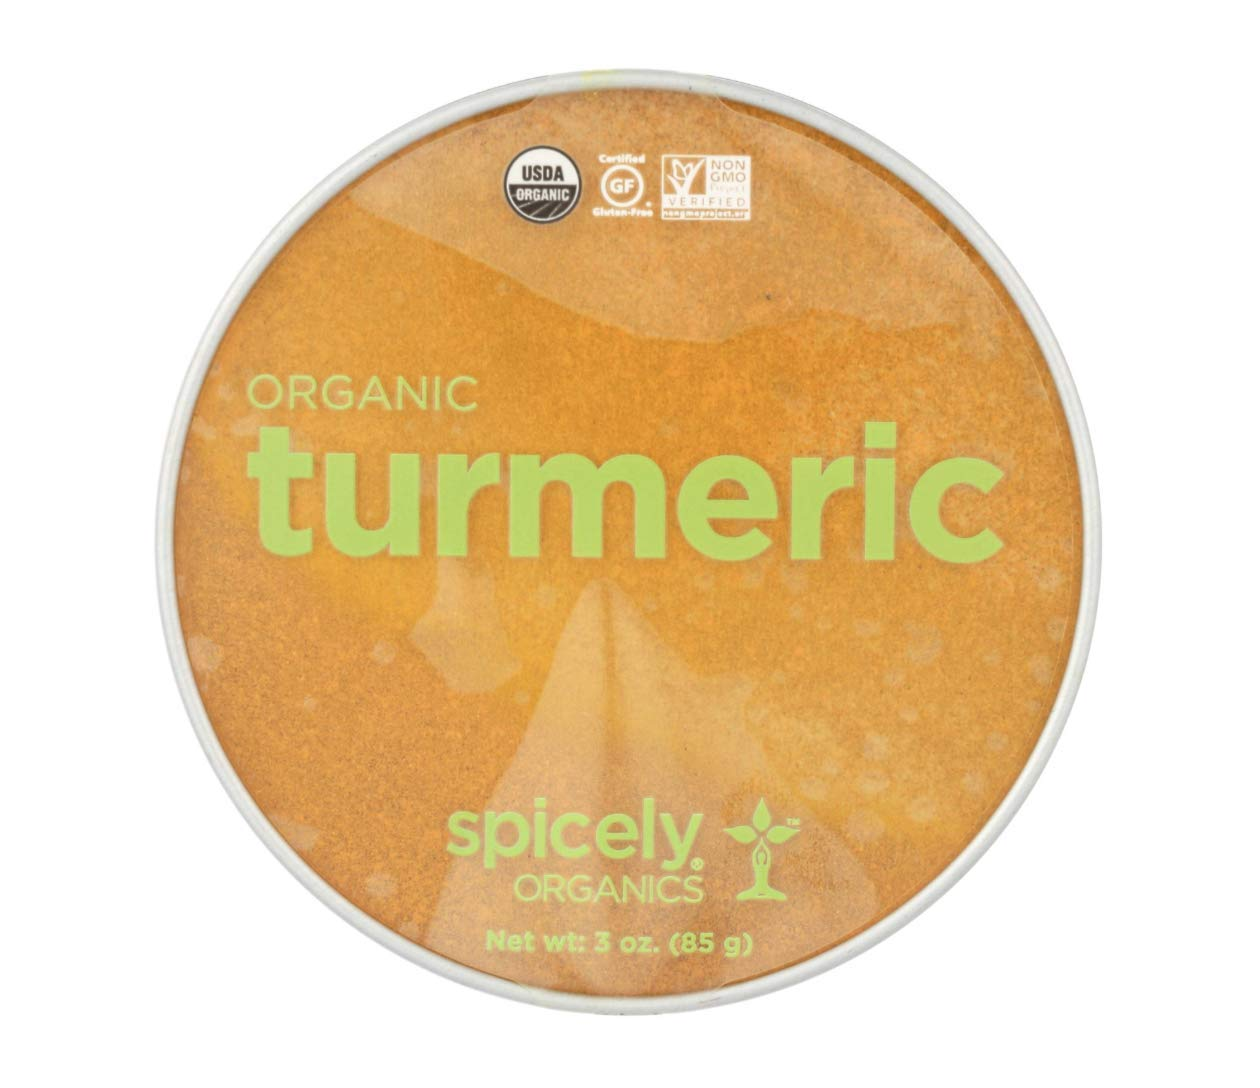 Spicely Organics Organic Turmeric | Case Of 2 | 3 Oz. by Unknown